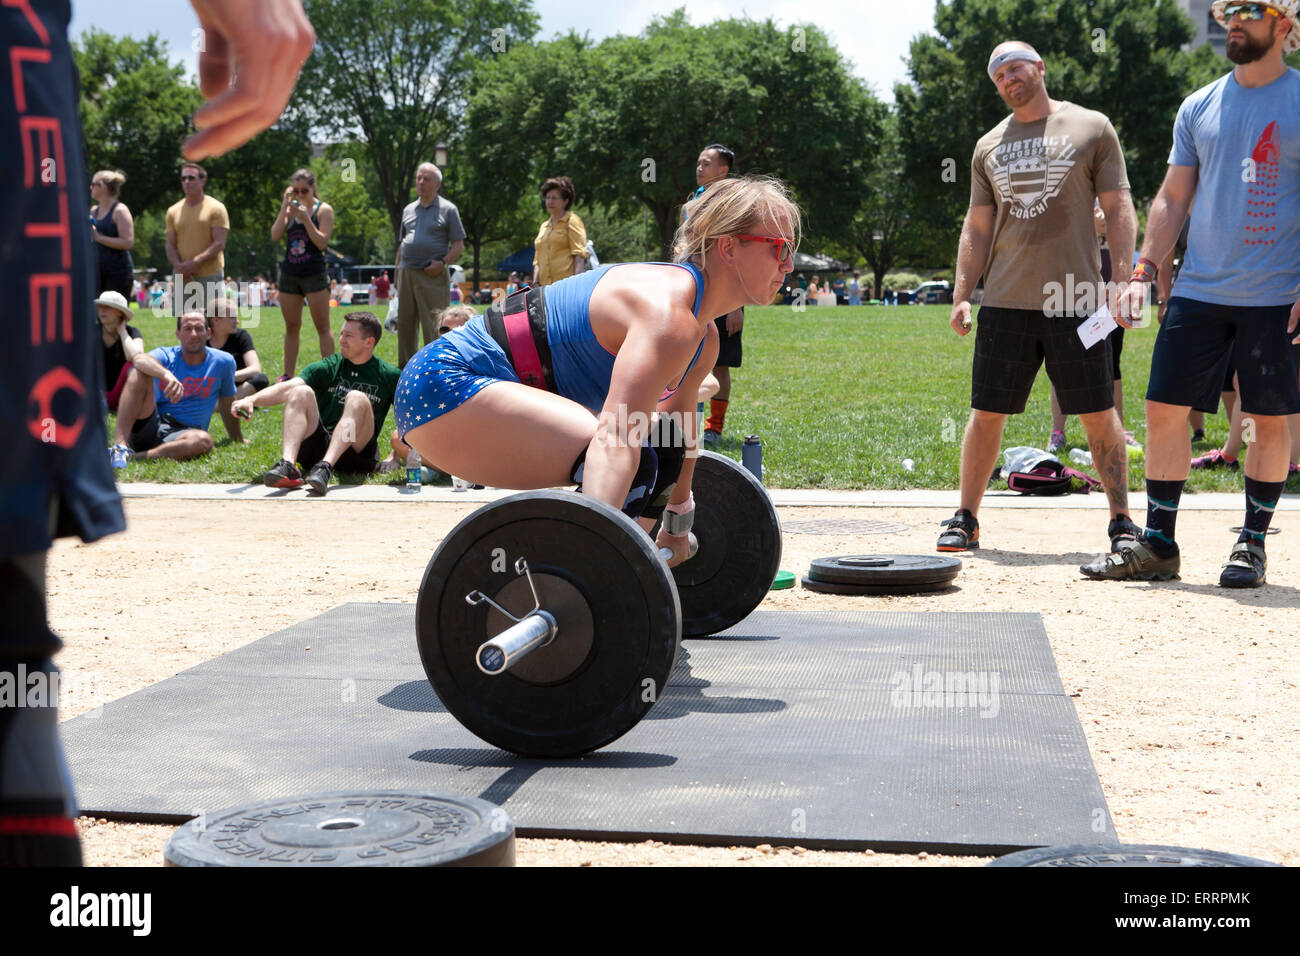 Woman performing weightlifting at an outdoor fitness program - USA - Stock Image